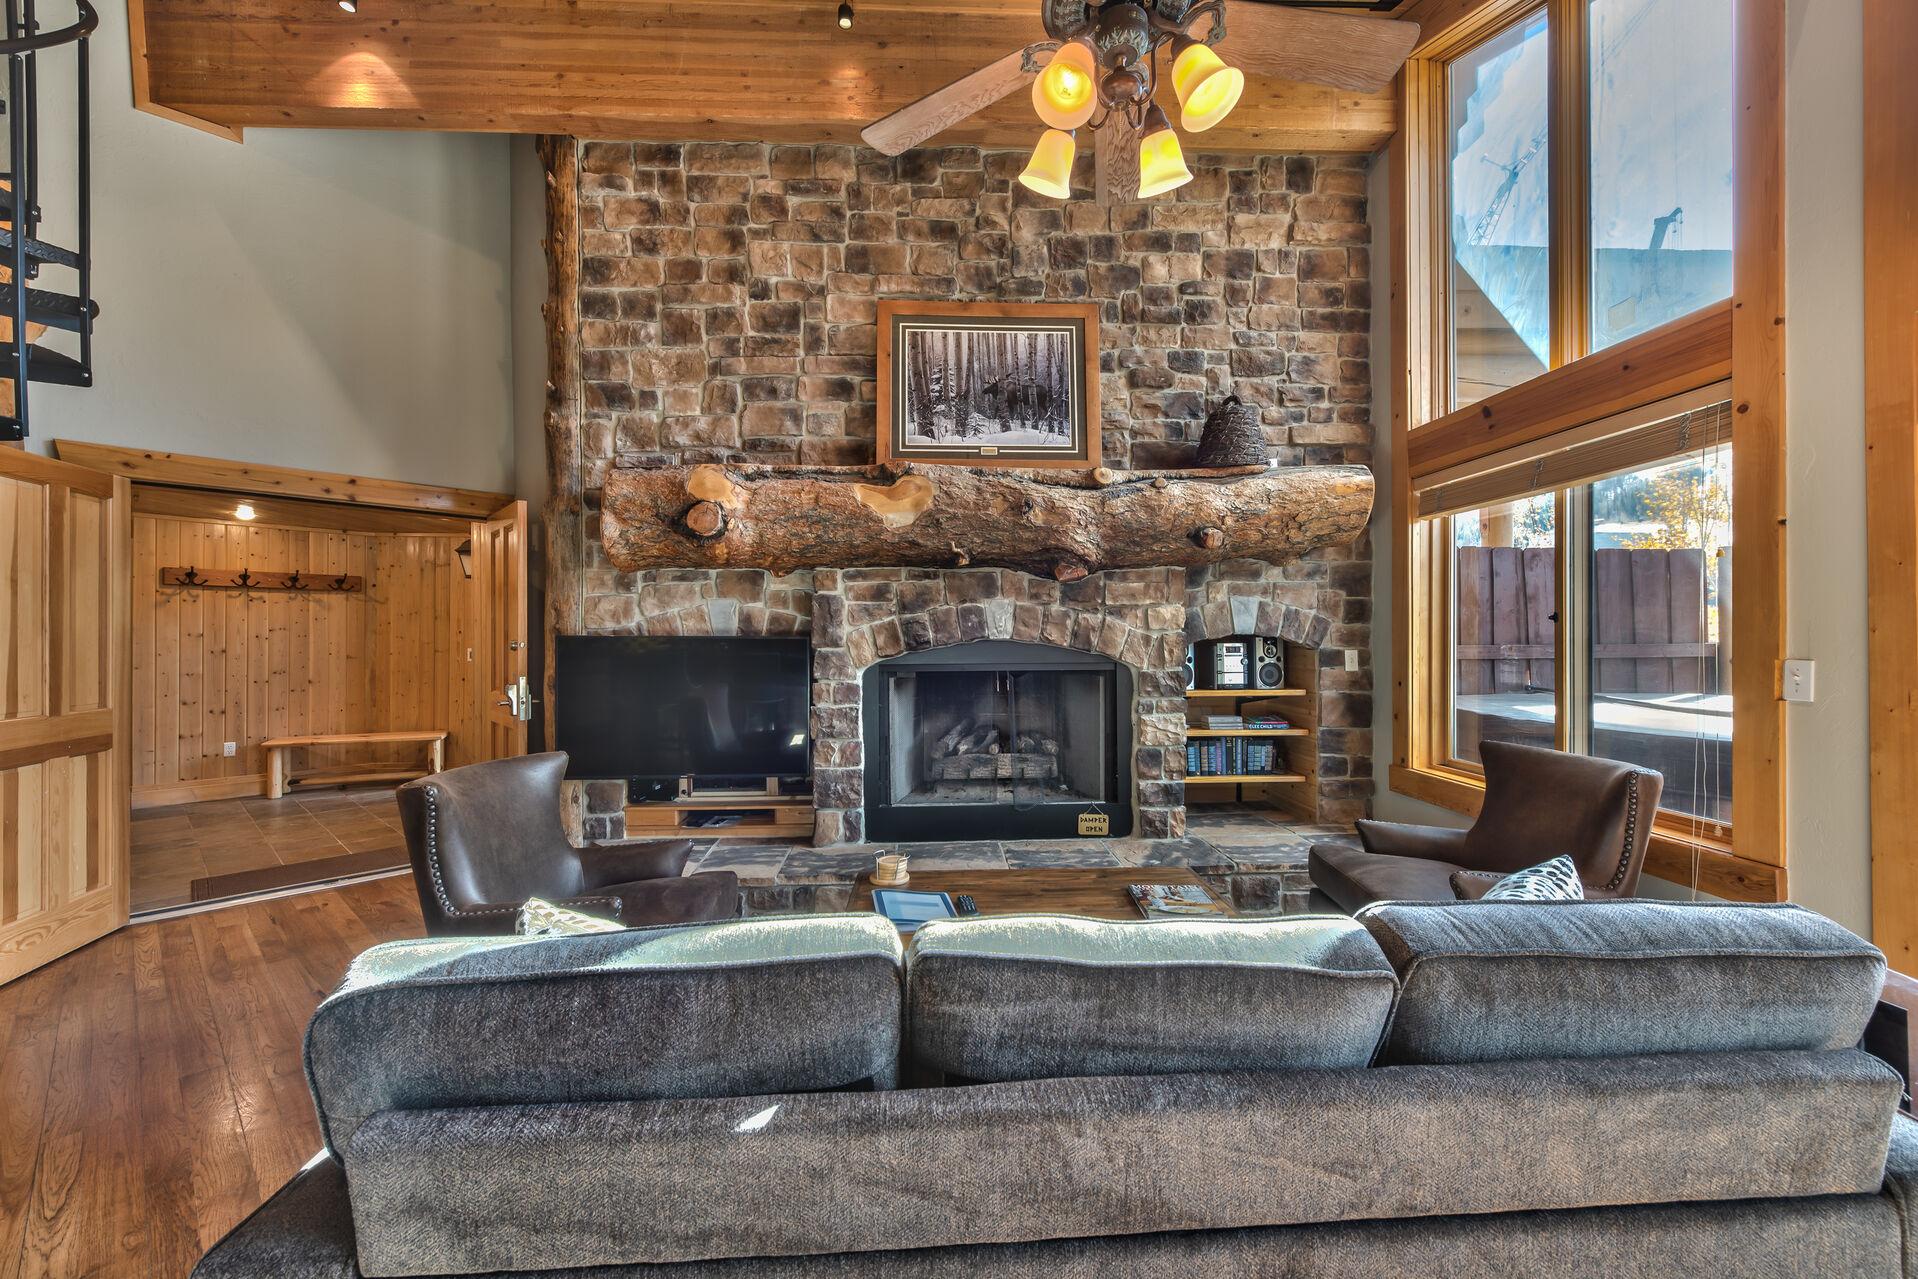 The Living Room with Fireplace in Our Black Bear Lodge in Deer Valley, Utah.